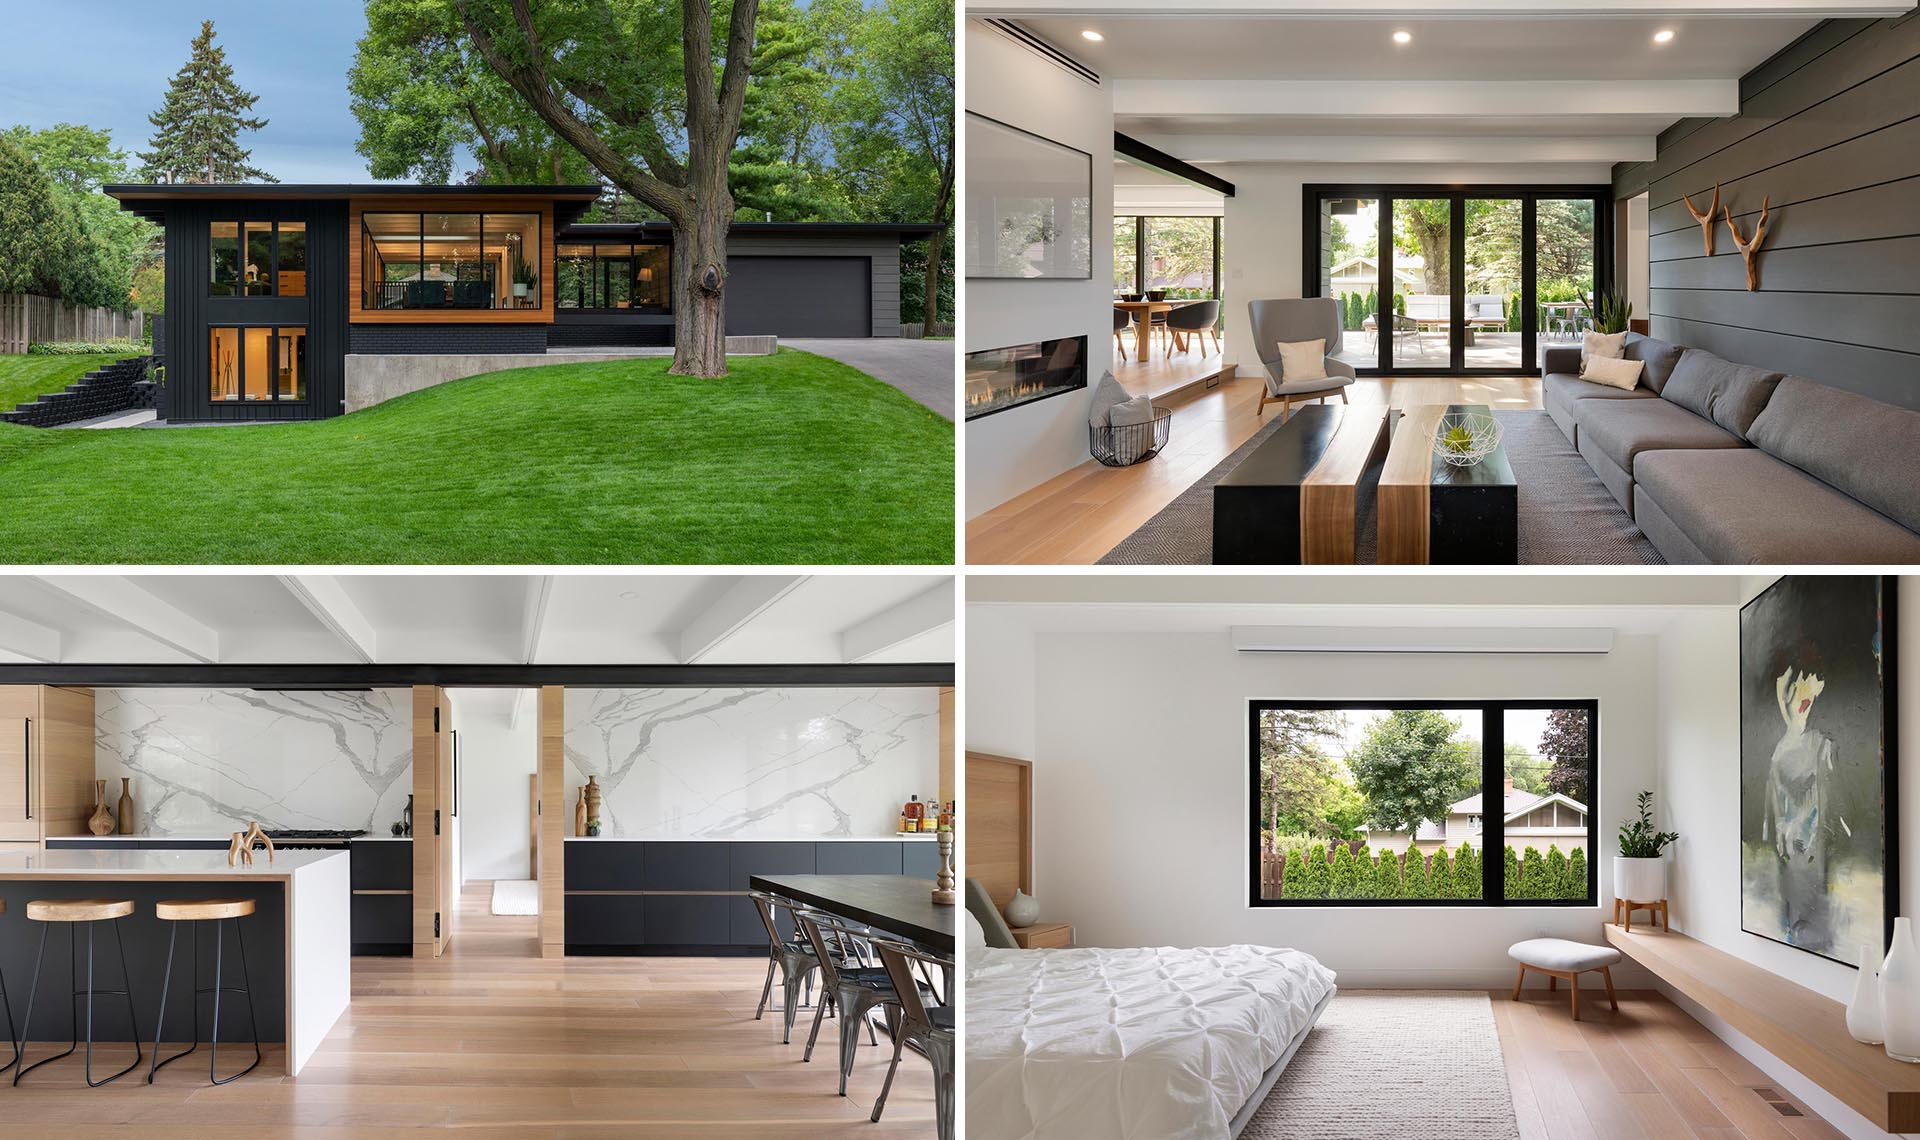 A remodeled mid-century modern home with an updated interior.